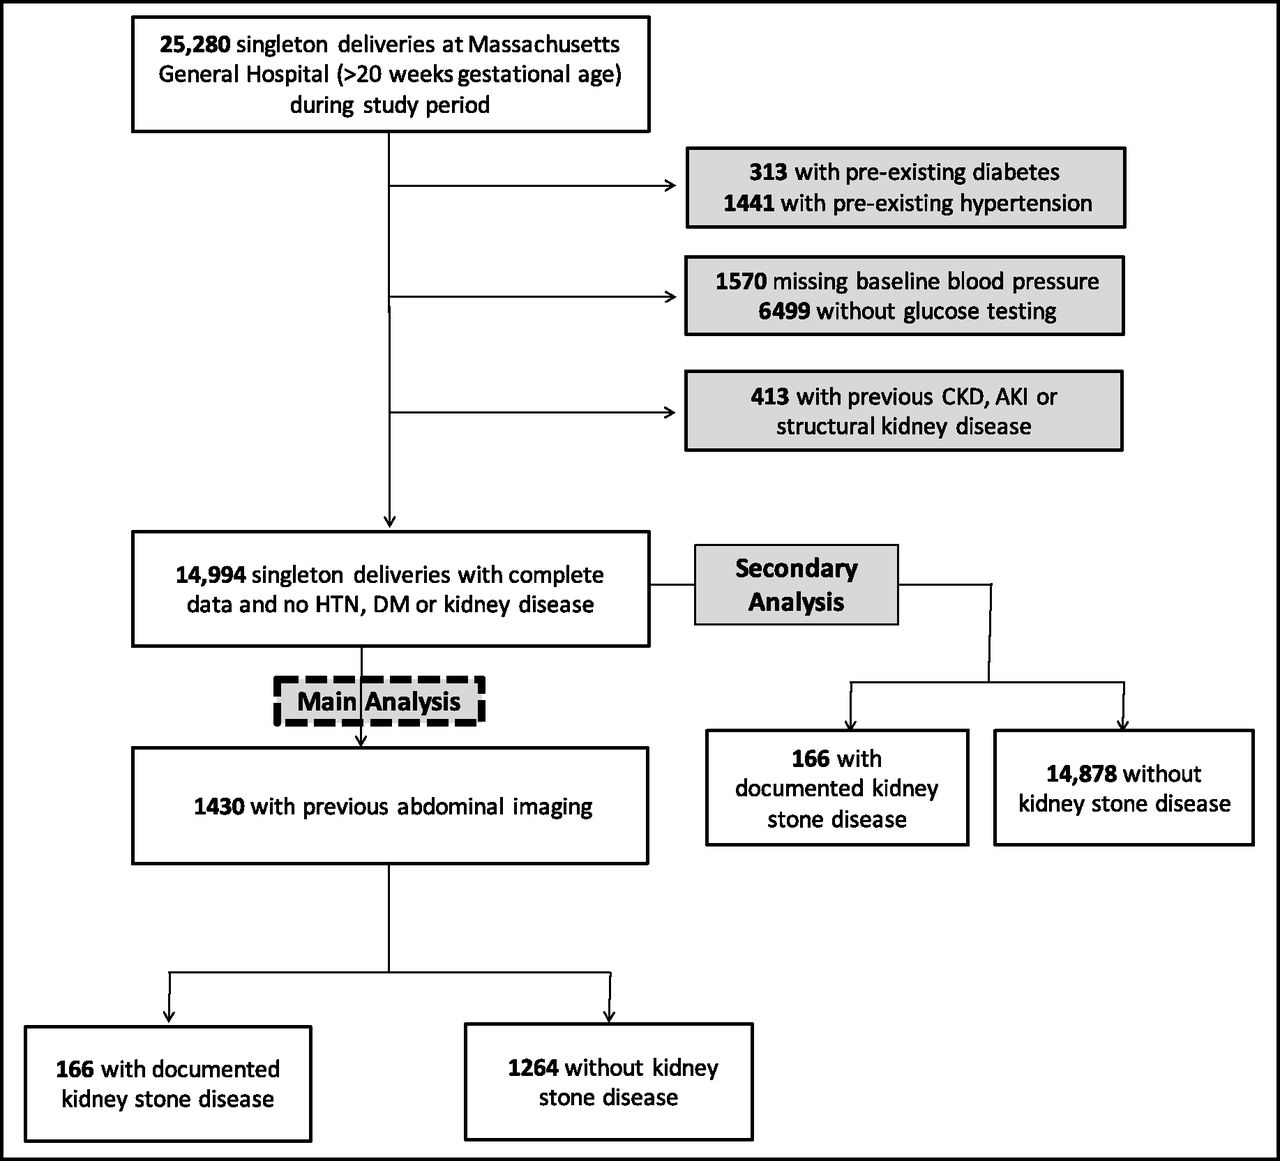 Metabolic And Hypertensive Complications Of Pregnancy In Women With